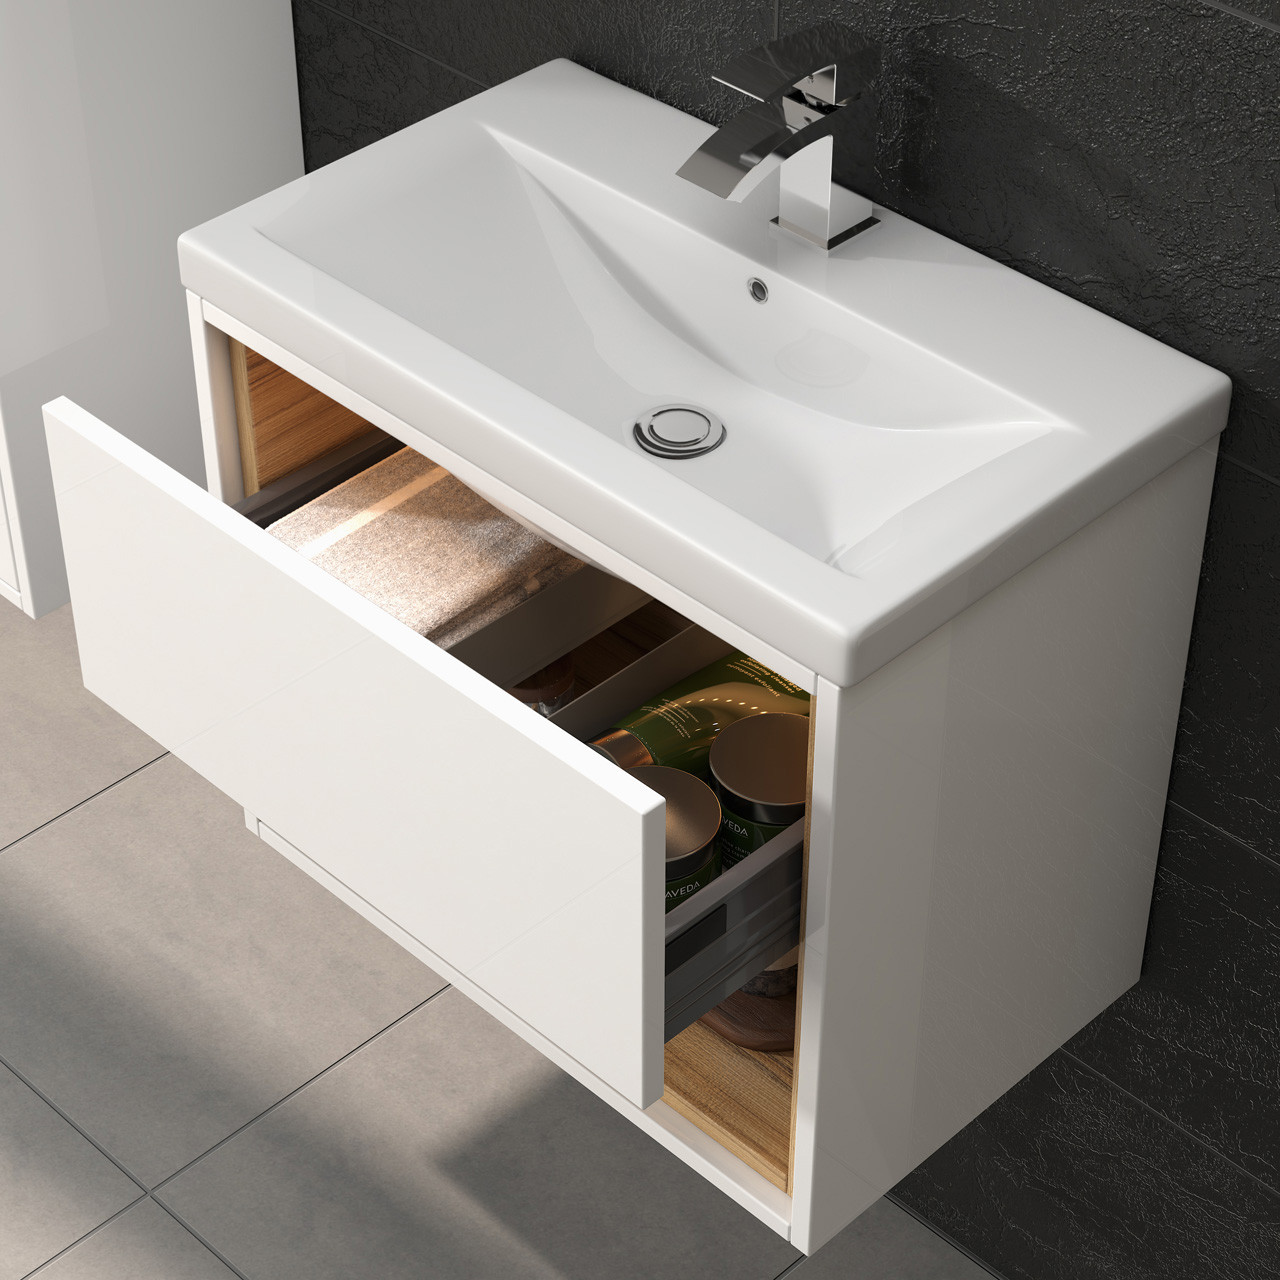 Hudson reed bathroom cabinets - Hudson Reed Coast White Gloss Wall Hung 500mm Cabinet 40mm Profile Basin Fmc984 Nvm012